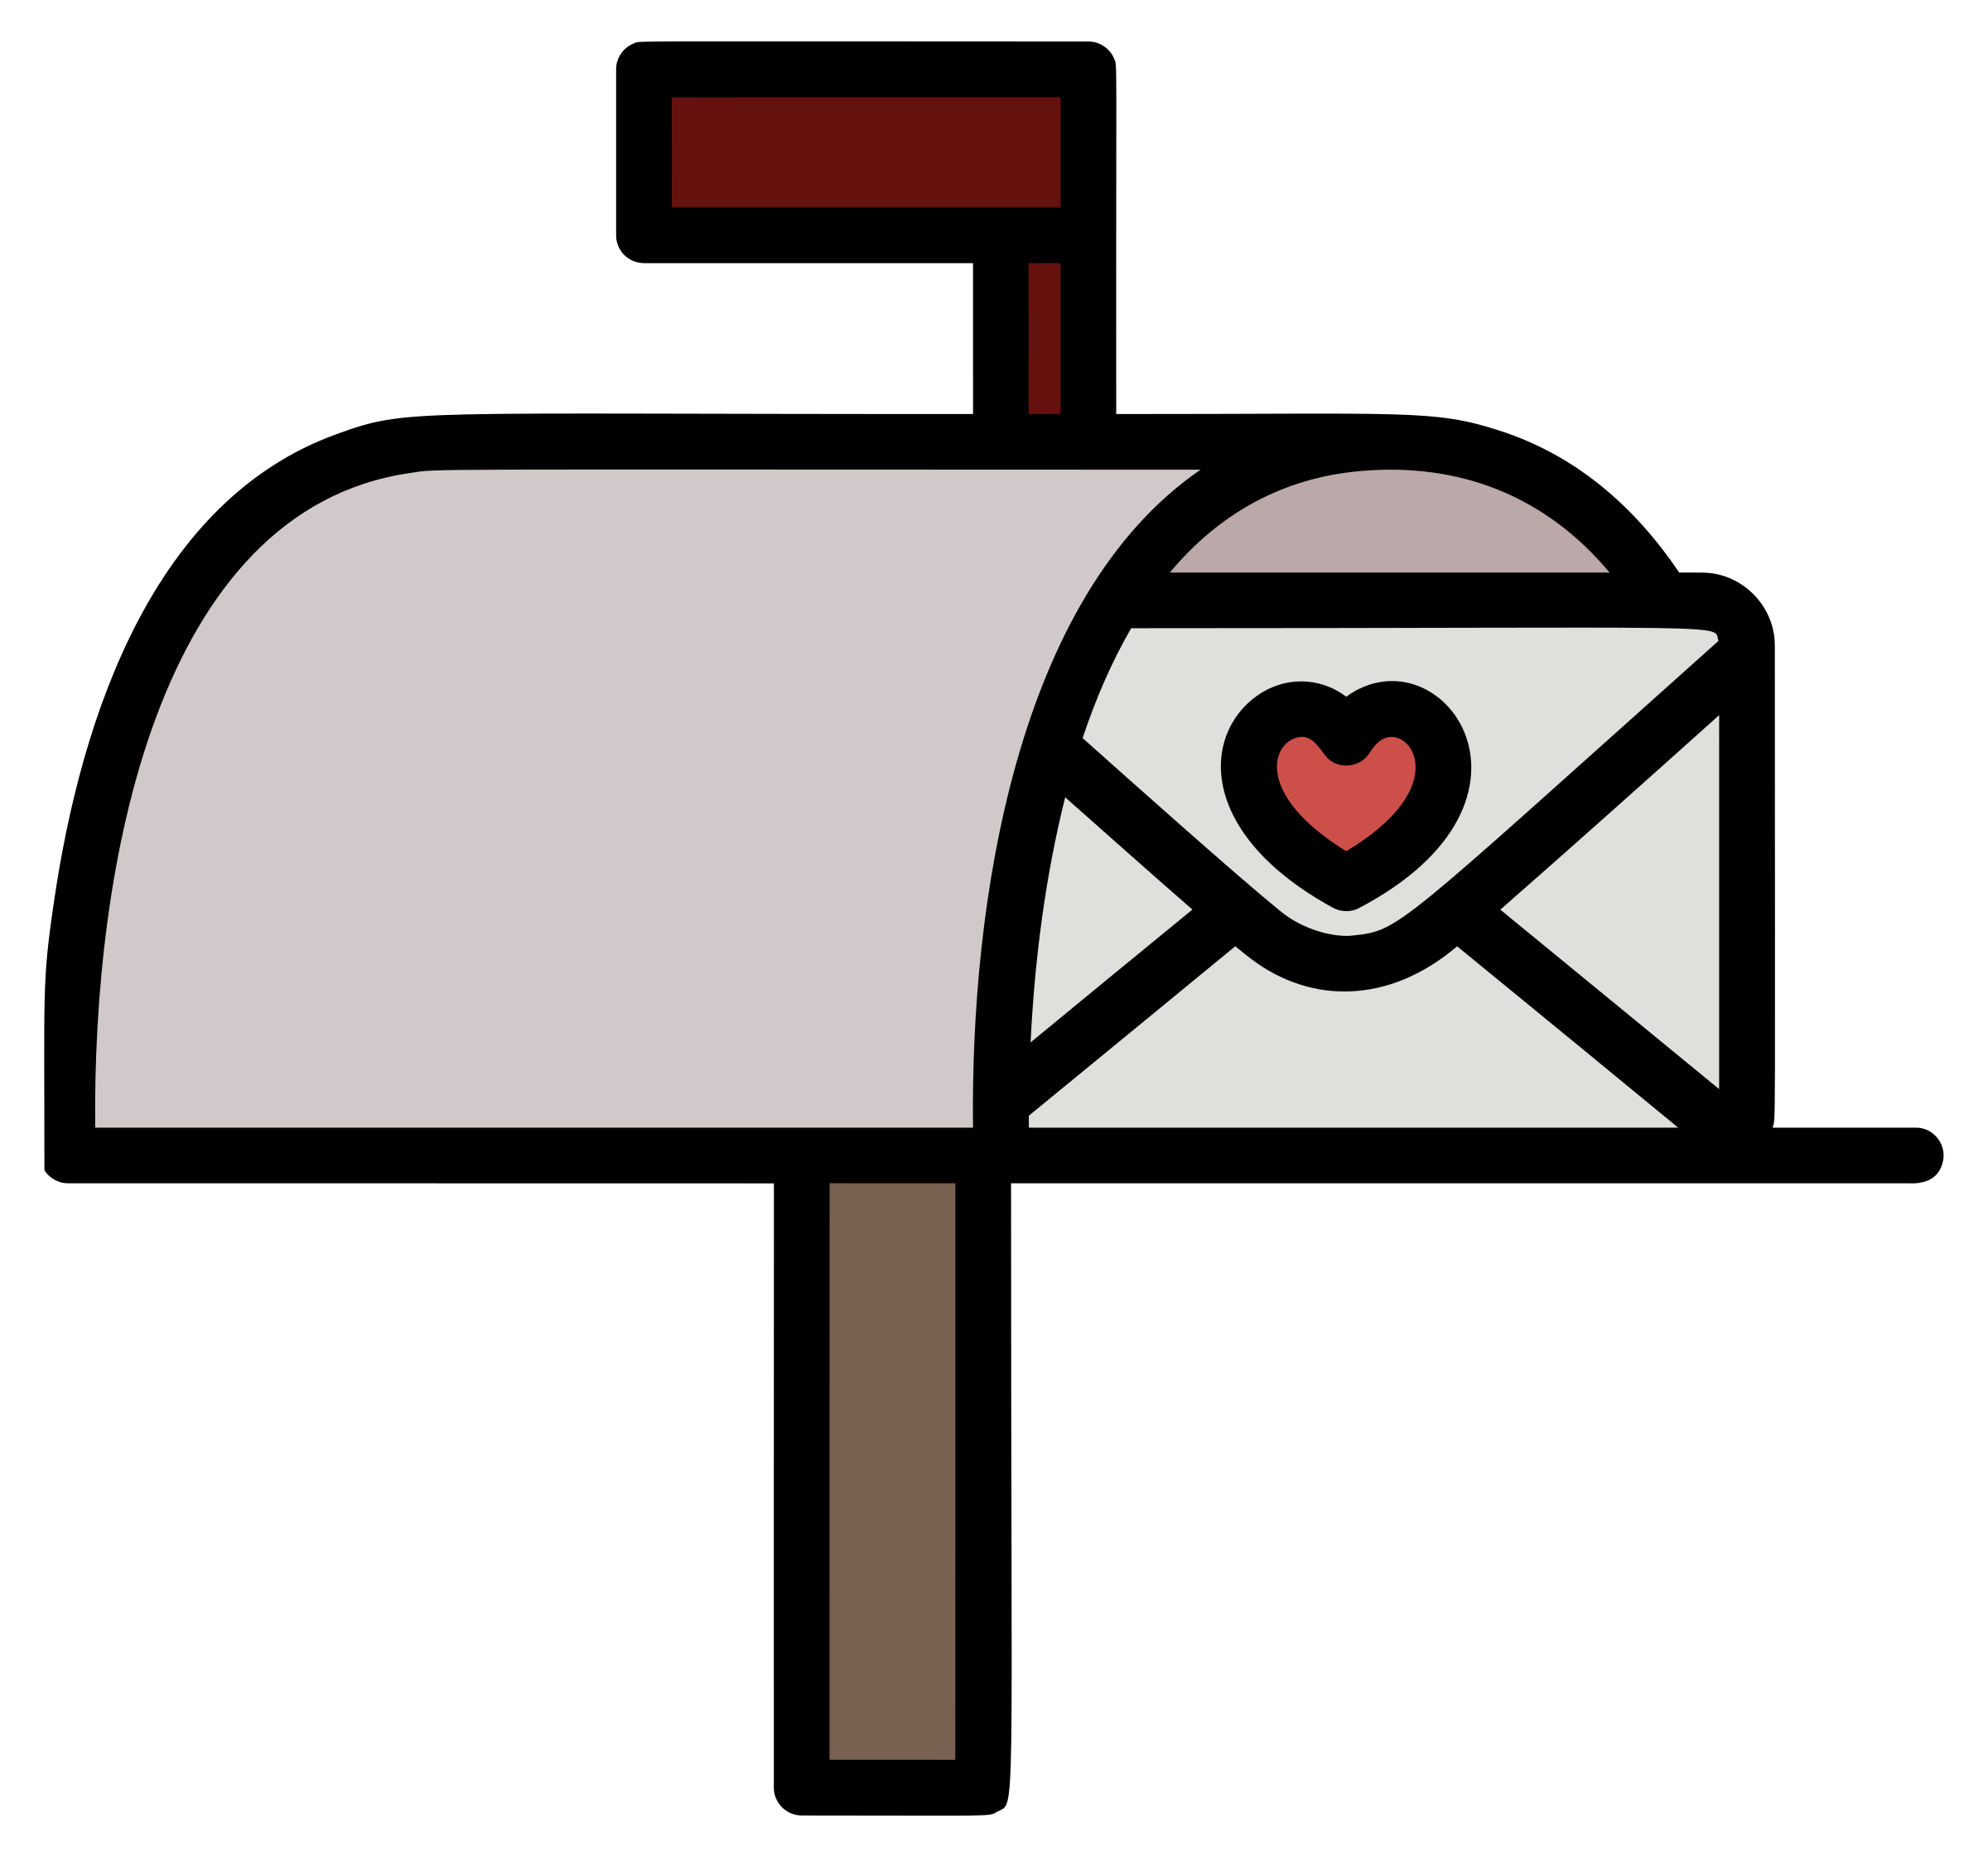 Mail clipart mail package. Residential student and information